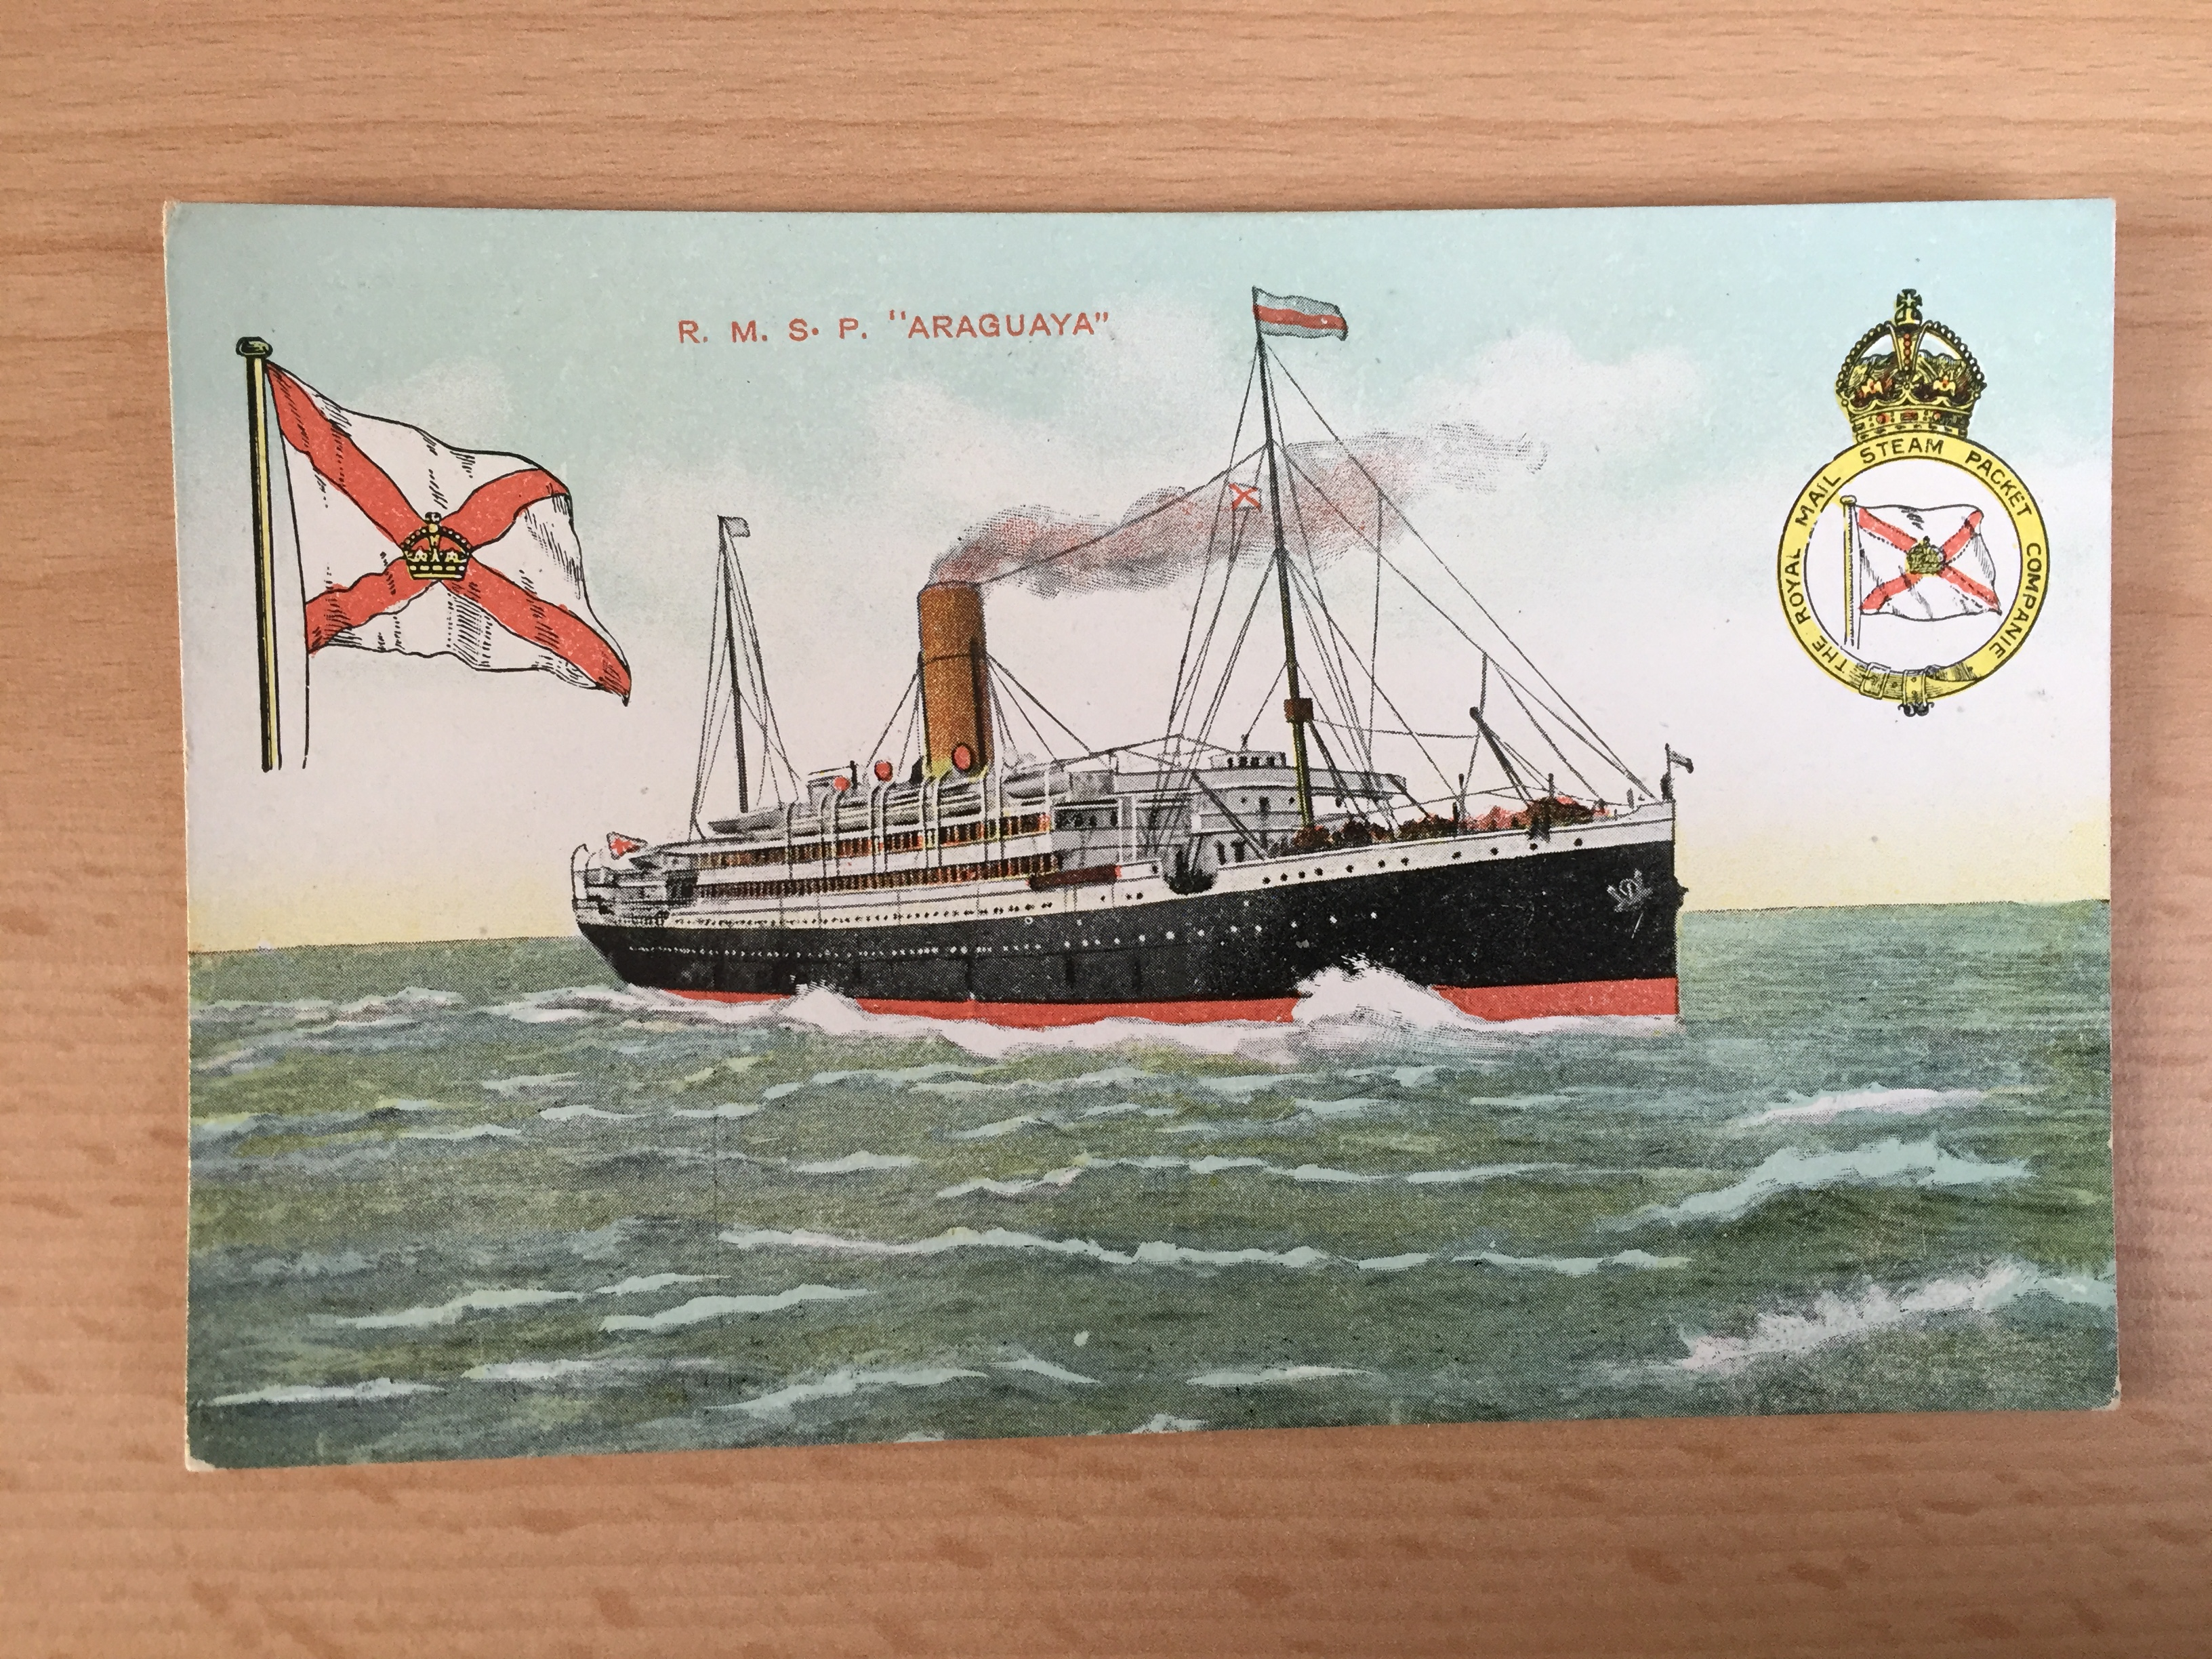 UNUSED POSTCARD FROM THE ROYAL MAIL LINE VESSEL THE ARAGUAYA